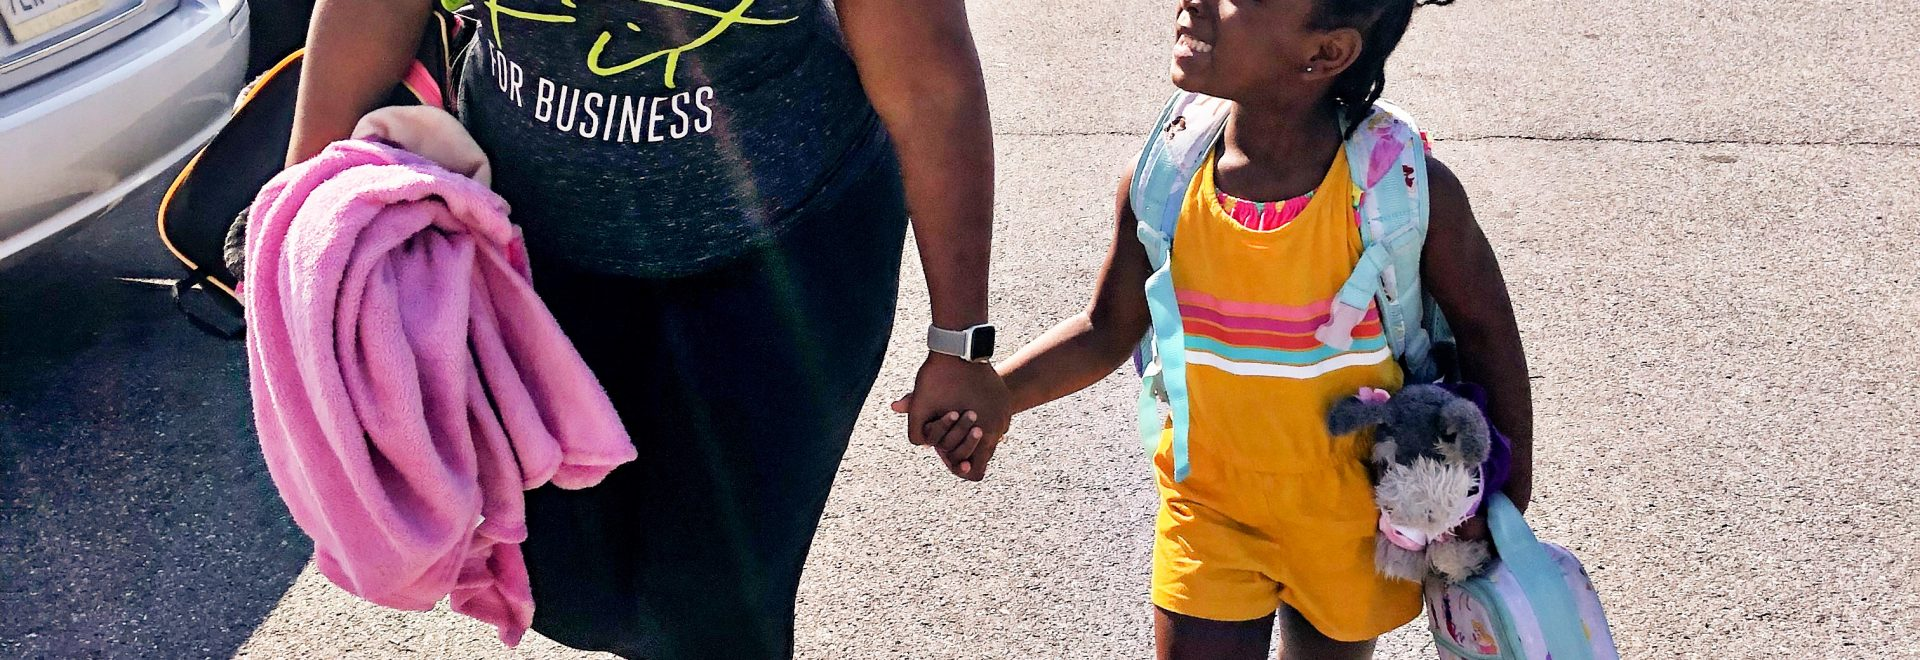 mom and daughter smiling while walking and holding hands